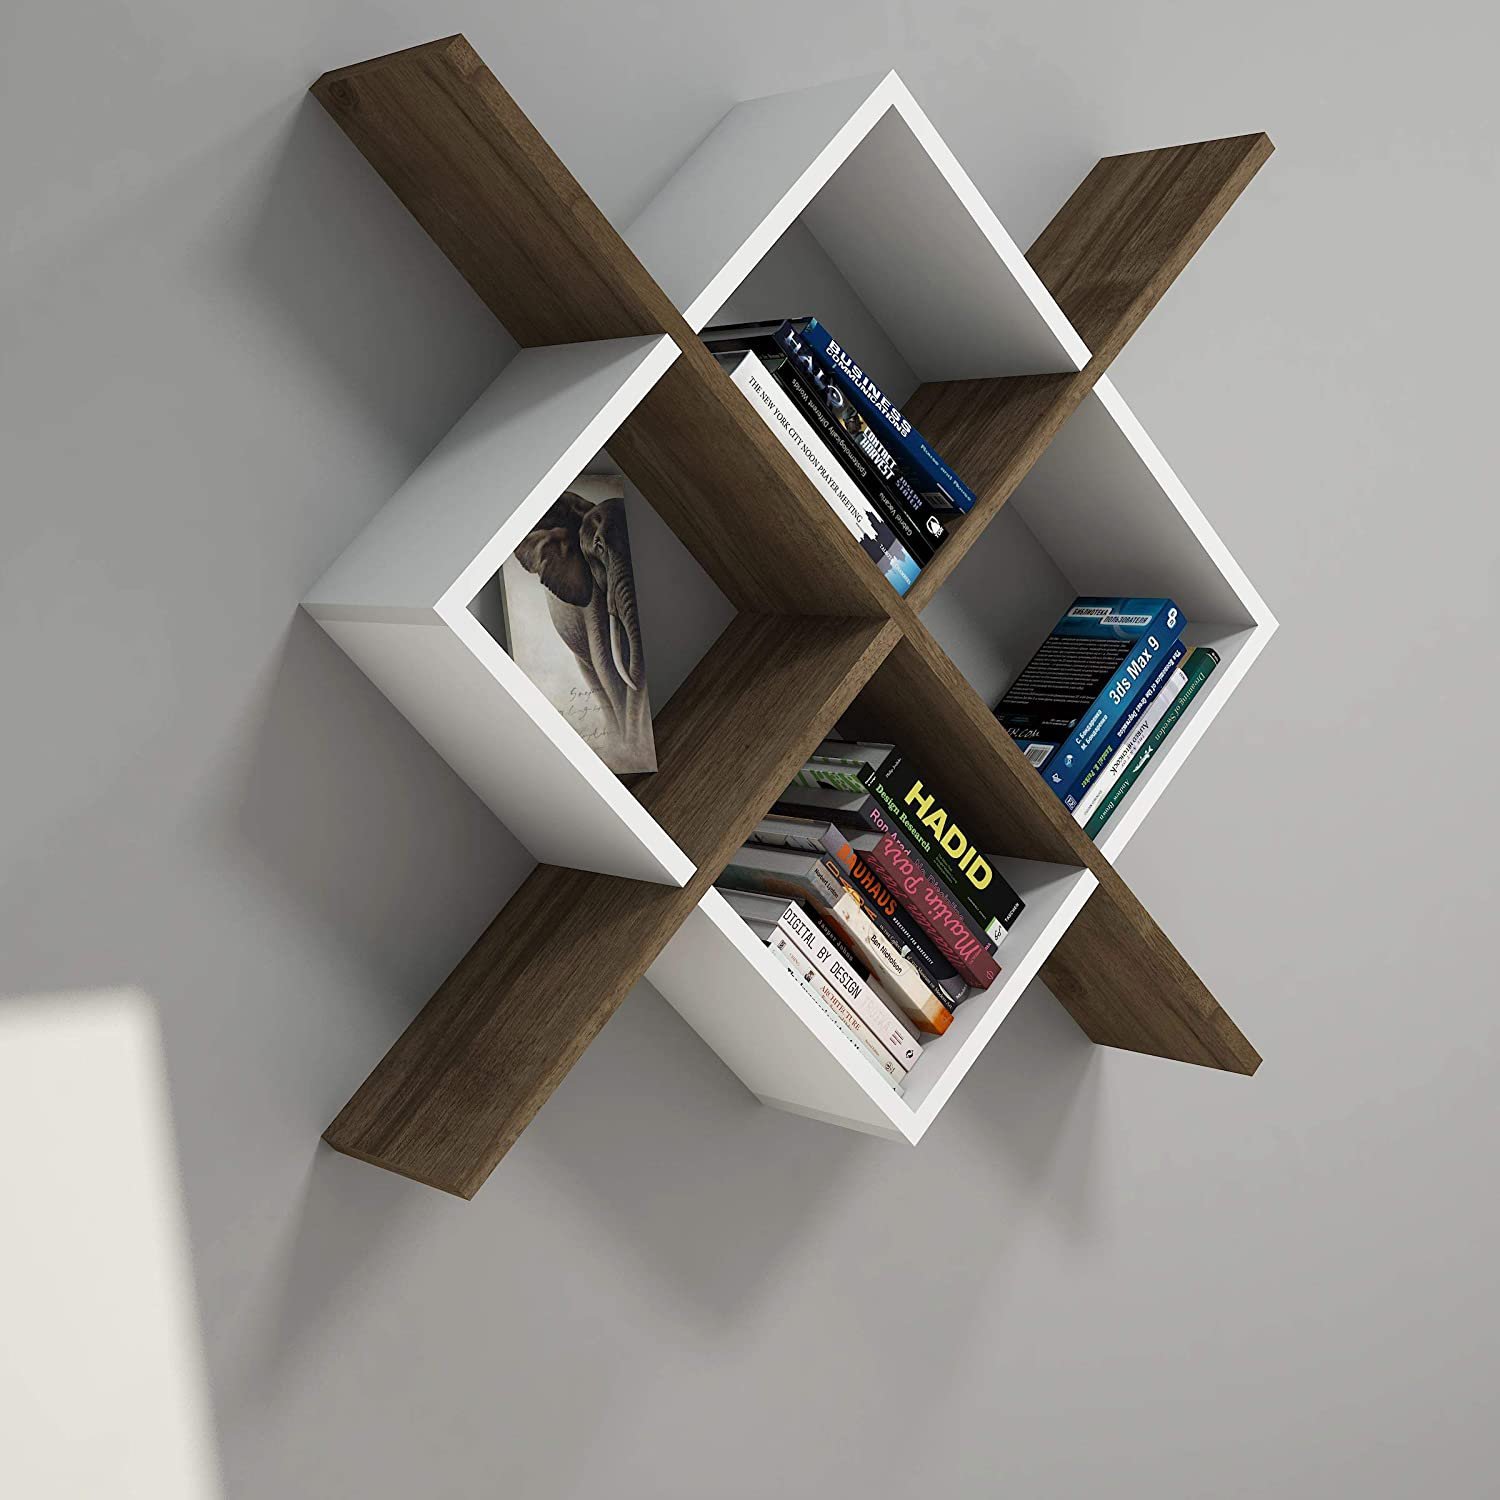 Vivense Semo Wall Mounted Bookcase - Floating Shelves And